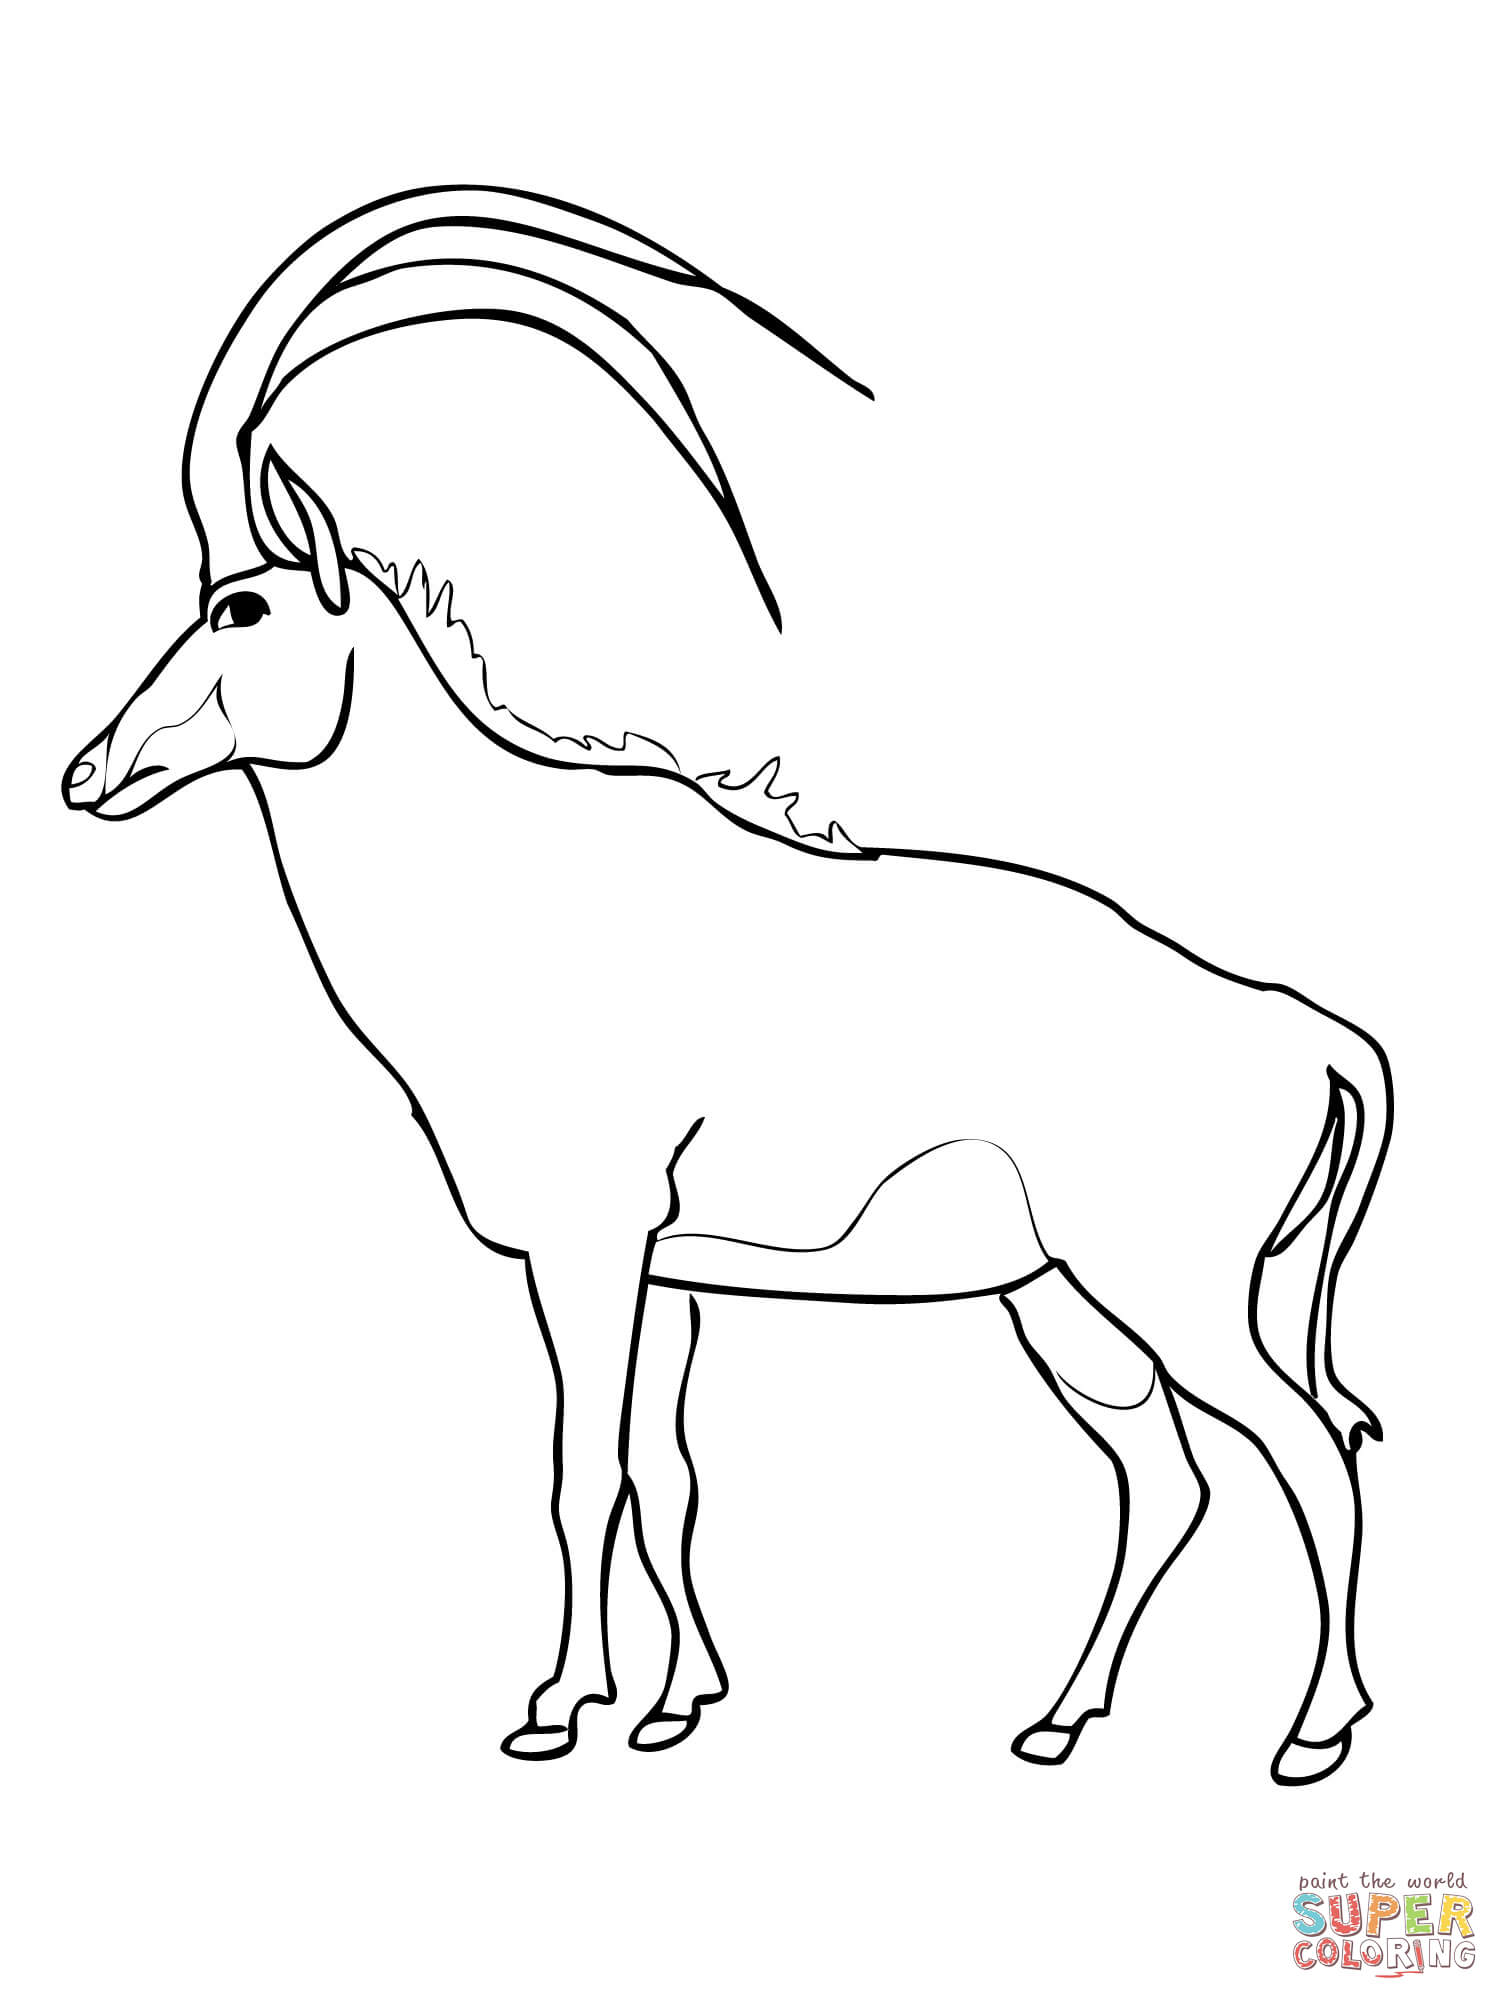 Springbok coloring pages download